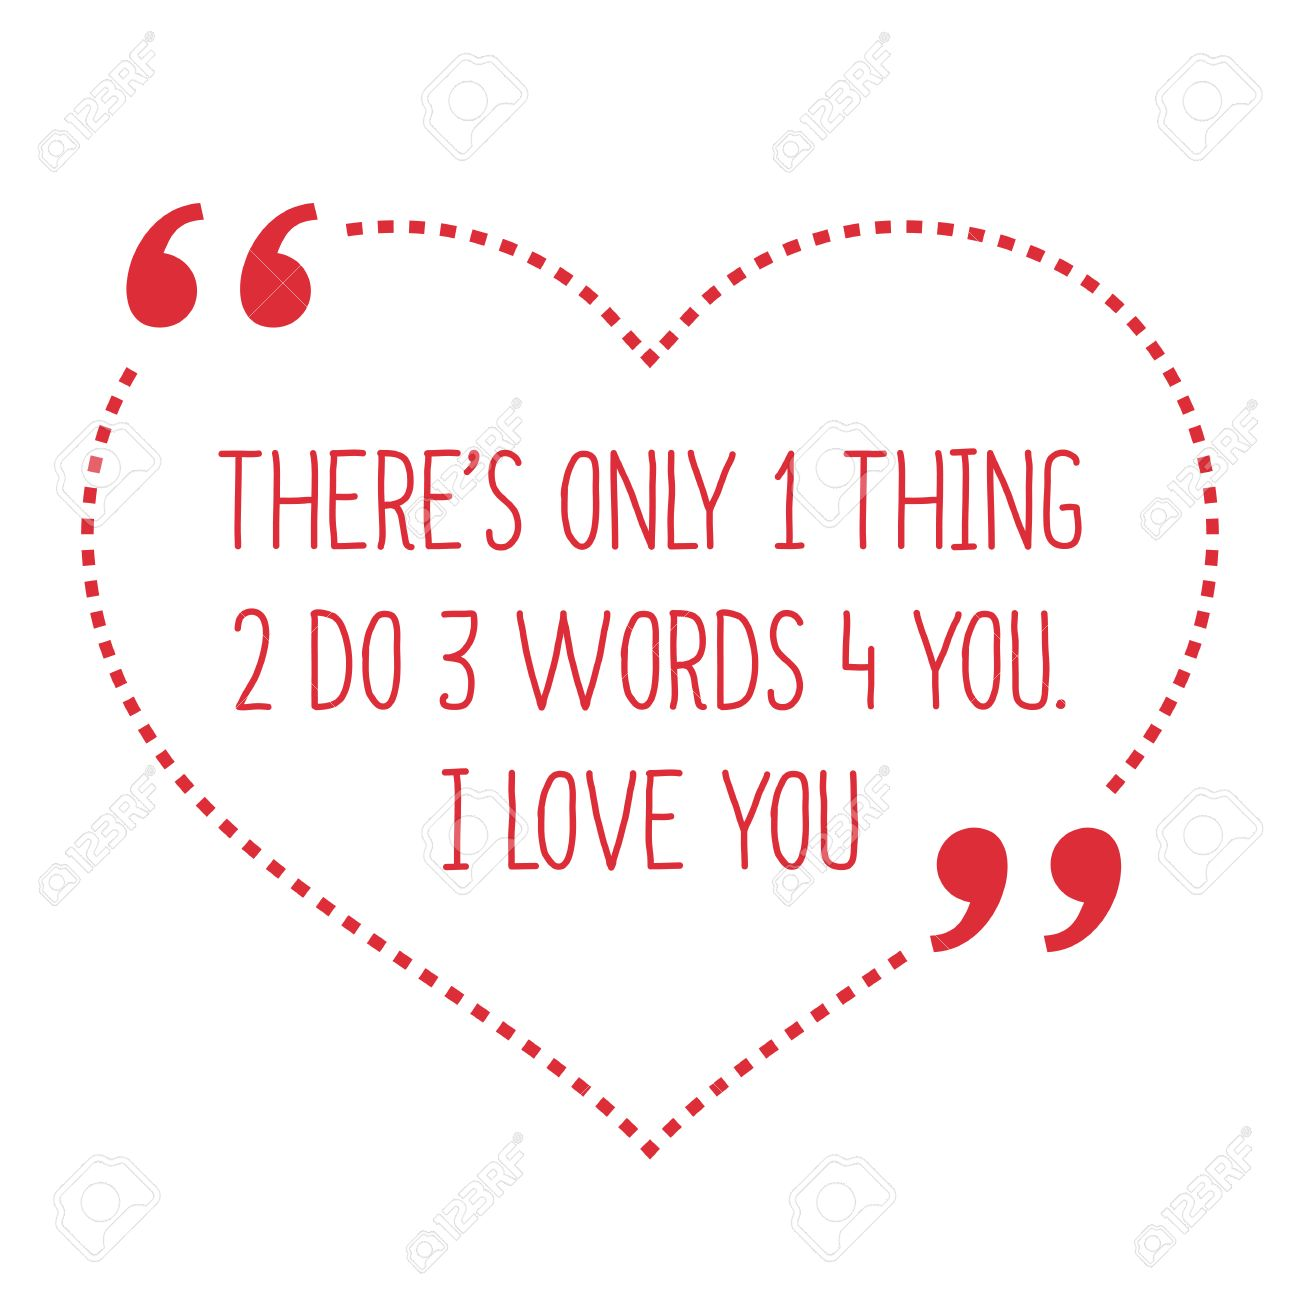 Simple I Love You Quotes Funny Love Quotethere's Only 1 Thing 2 Do 3 Words 4 Youi